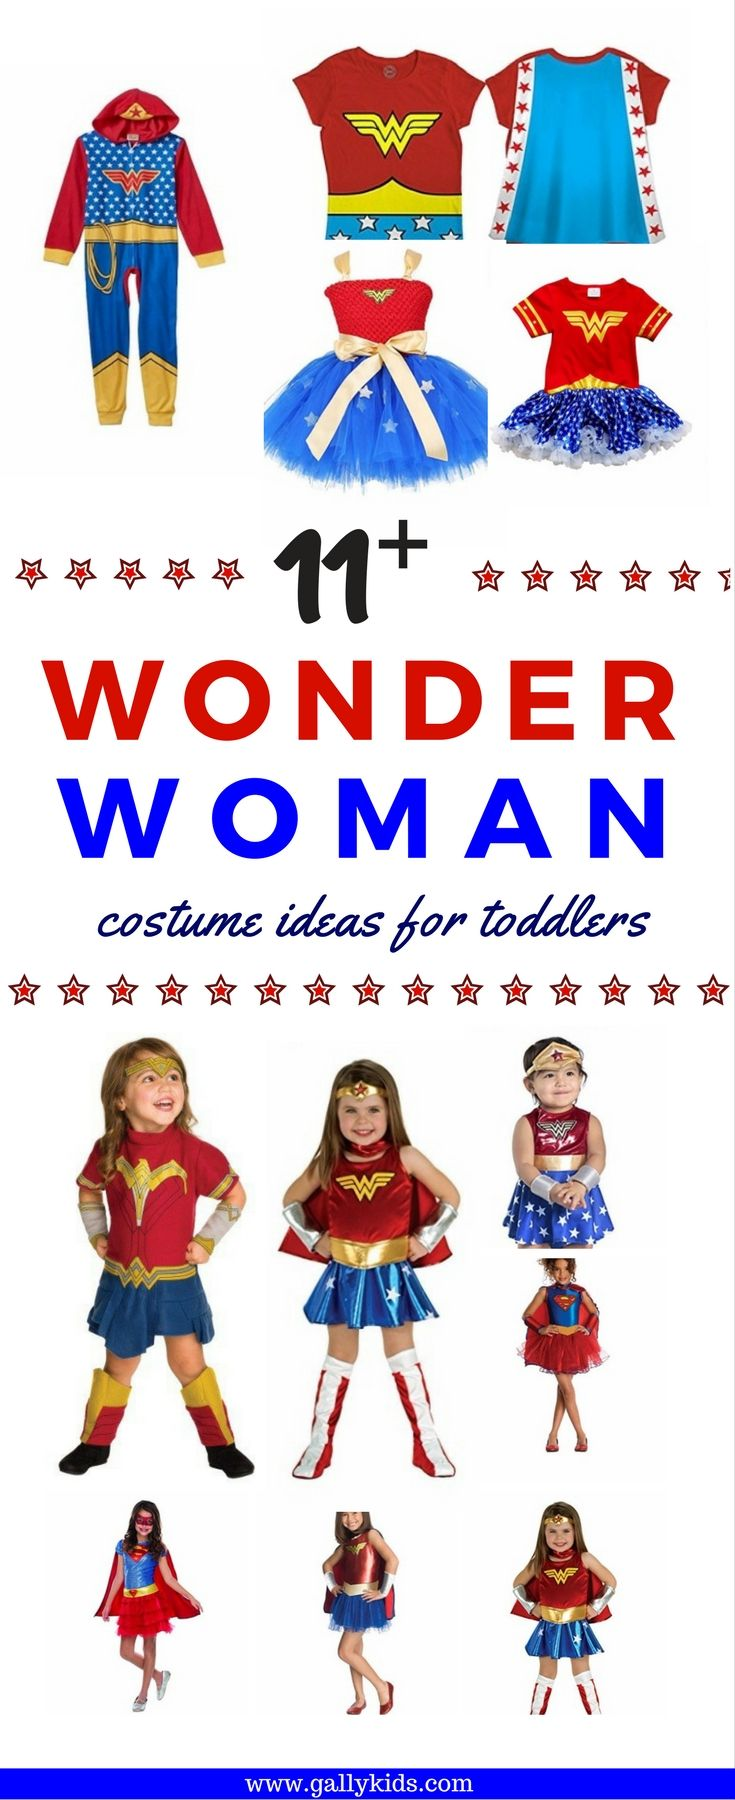 Toddler Wonder Woman costumes for Halloween and pretend play. I especially love the tutu skirt costumes. So cute! Choose which one is best for your little one. Pick a complete set or just mix and match. #halloween #halloweencostumes #wonderwoman #costumesforkids #costumes